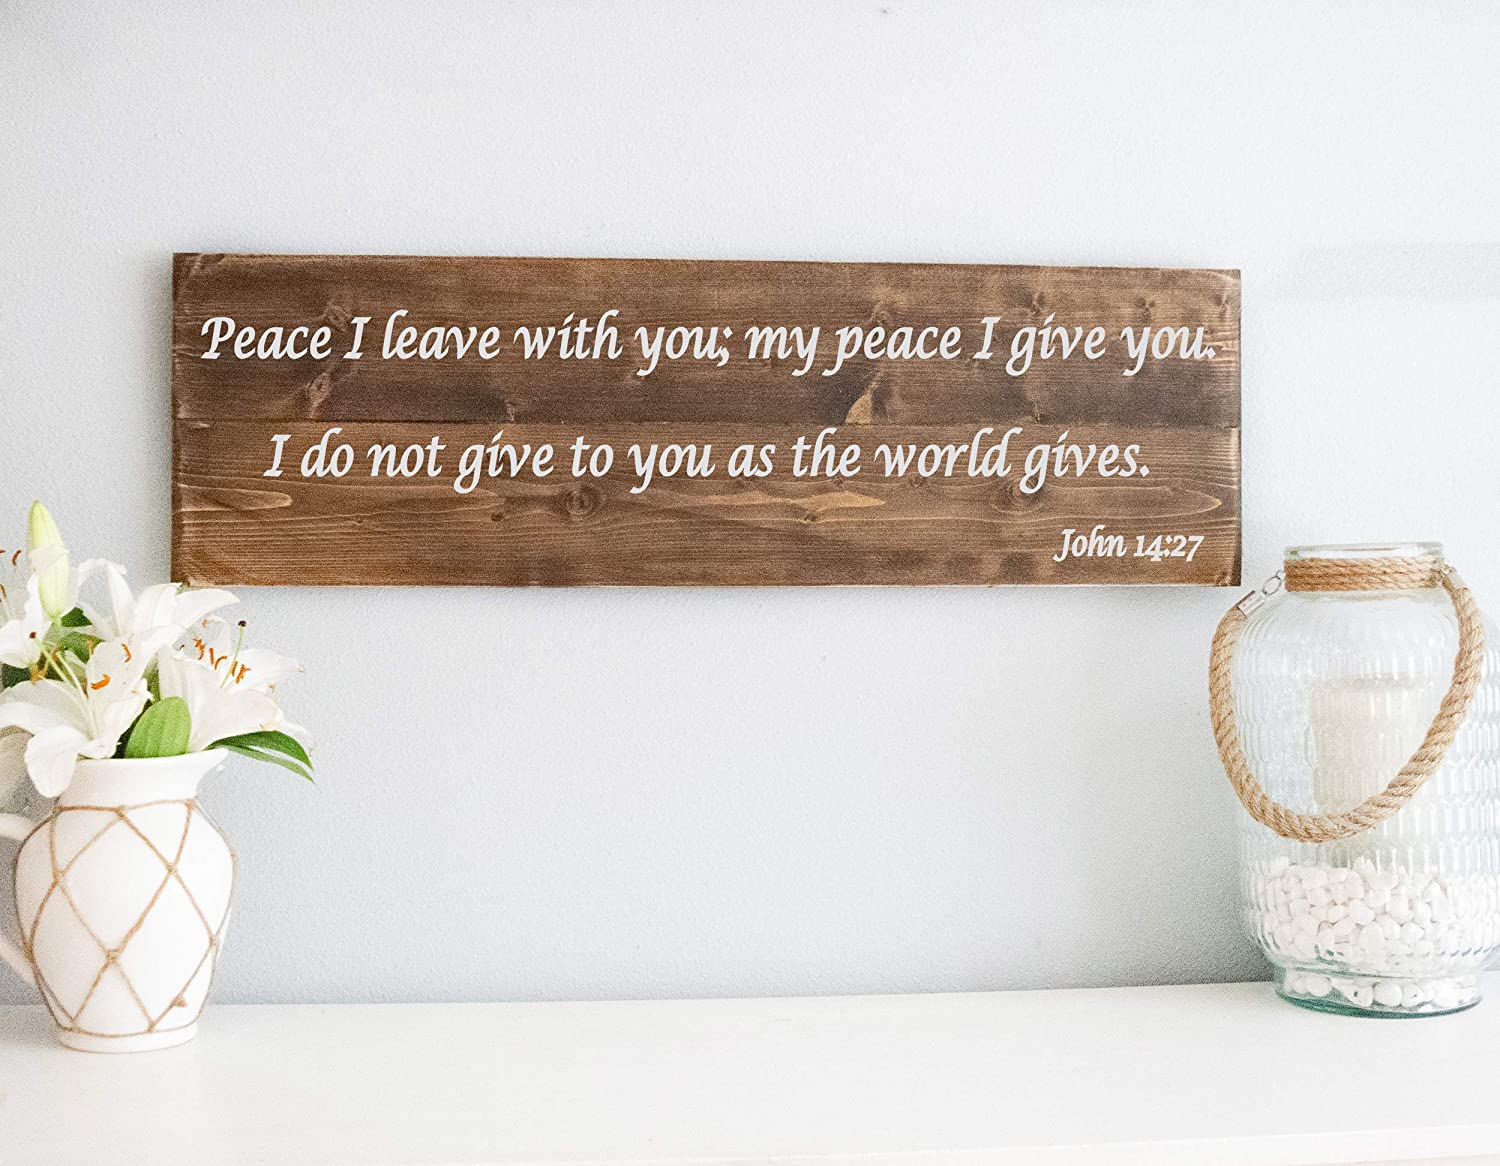 Personalized Bible Verse Wood Sign, Custom Wall Decor, Christian Wood Sign – Bible Verse Wall Hangings Wooden Art